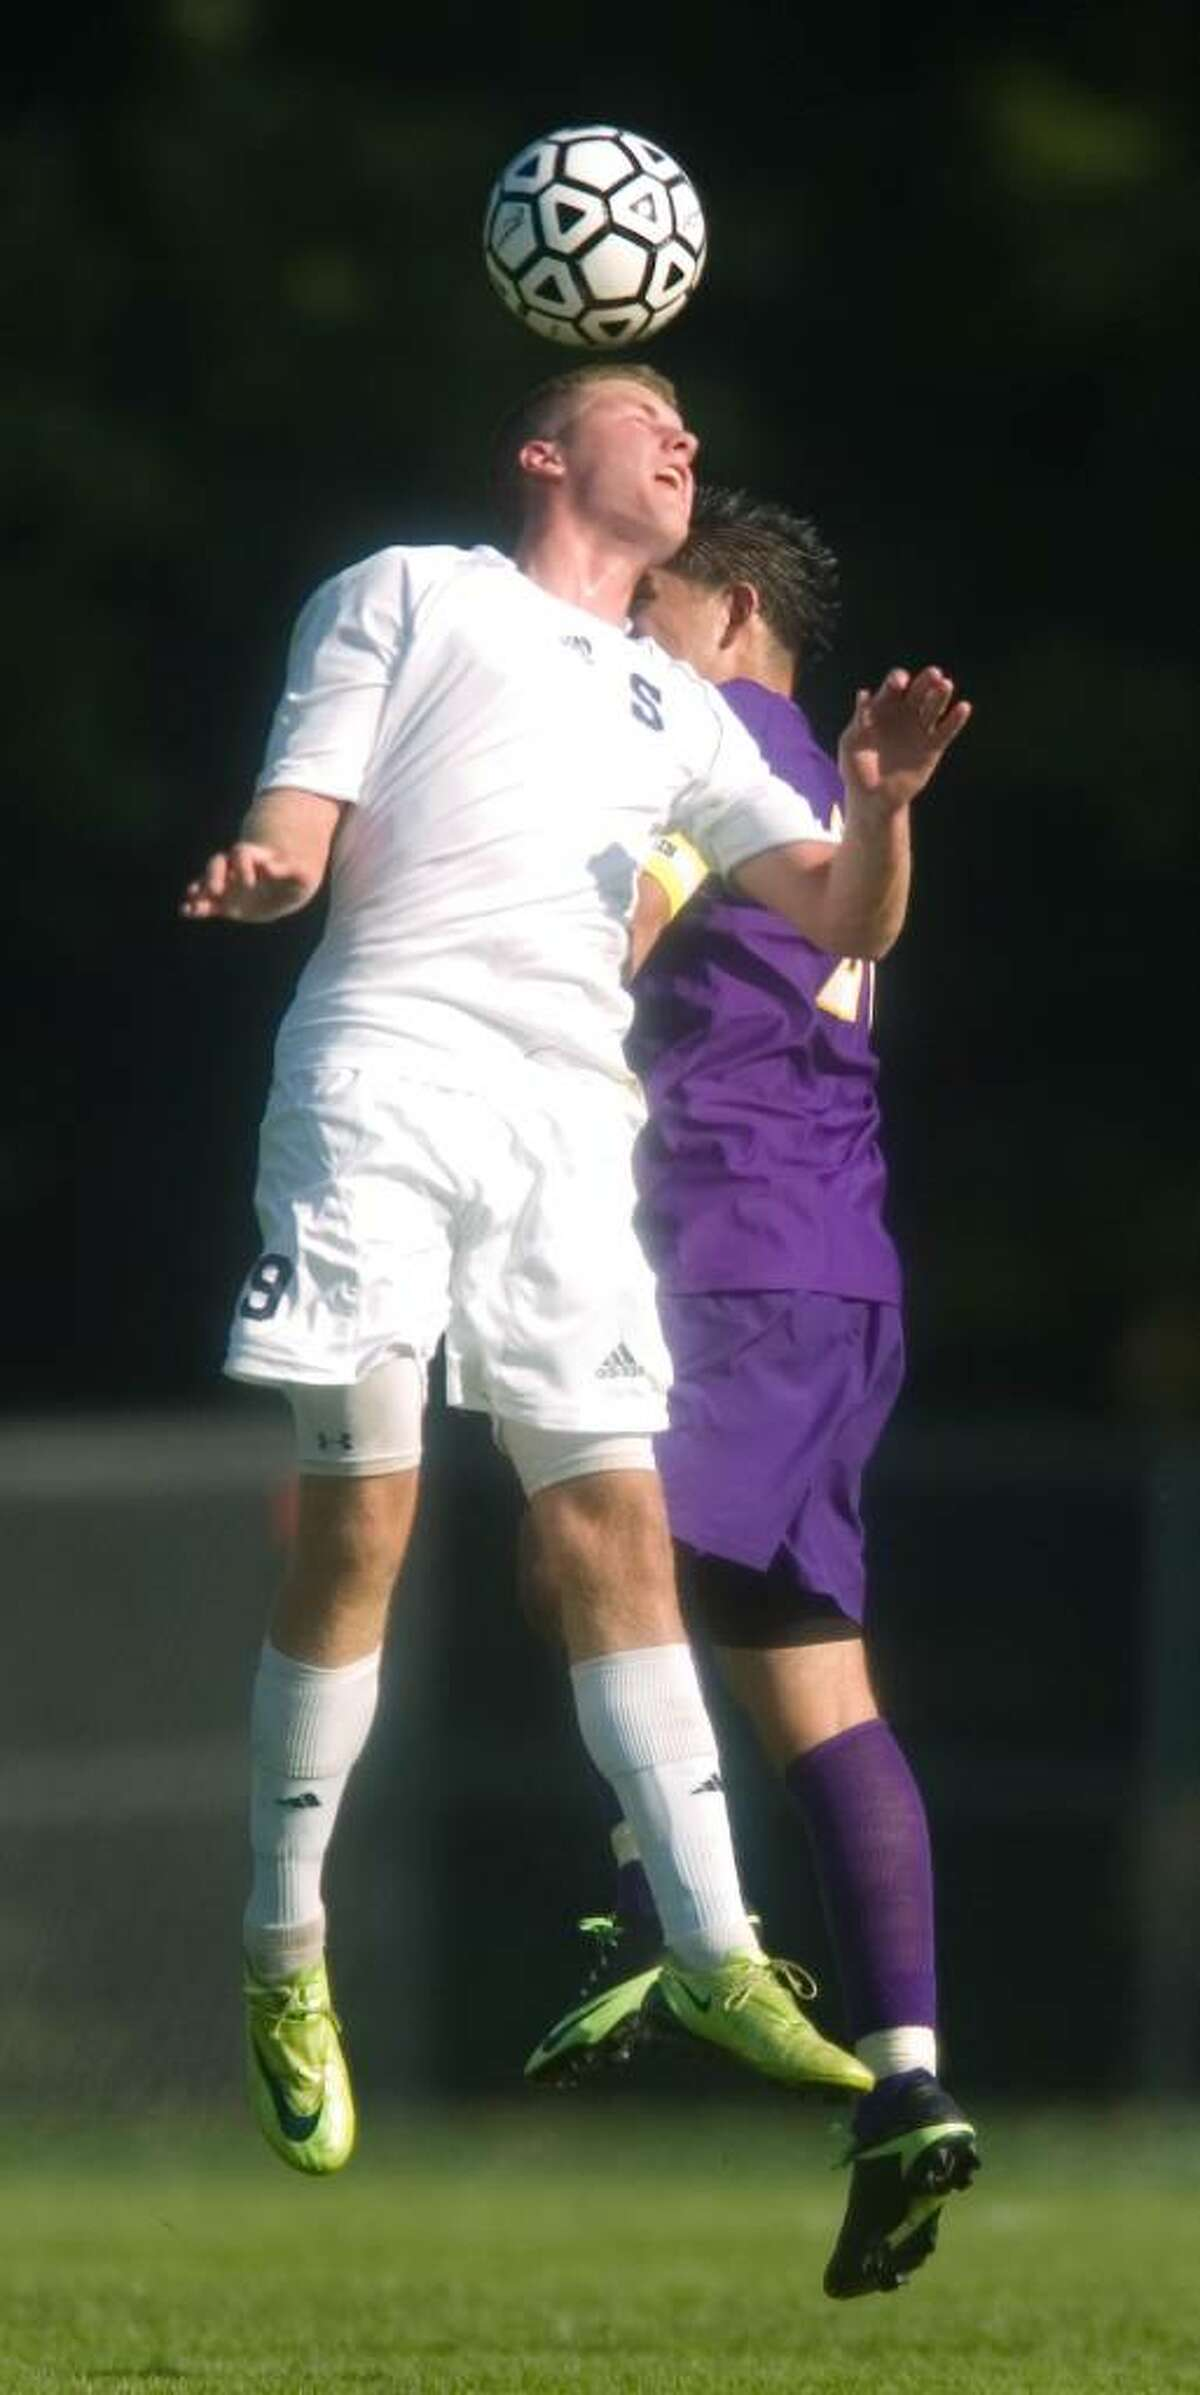 Staples High School player Breandan Lesch goes up for a header during an FCIAC soccer match versus Westhill High School at Staples High School in Westport, Conn. on Tuesday, Sept. 15, 2009.